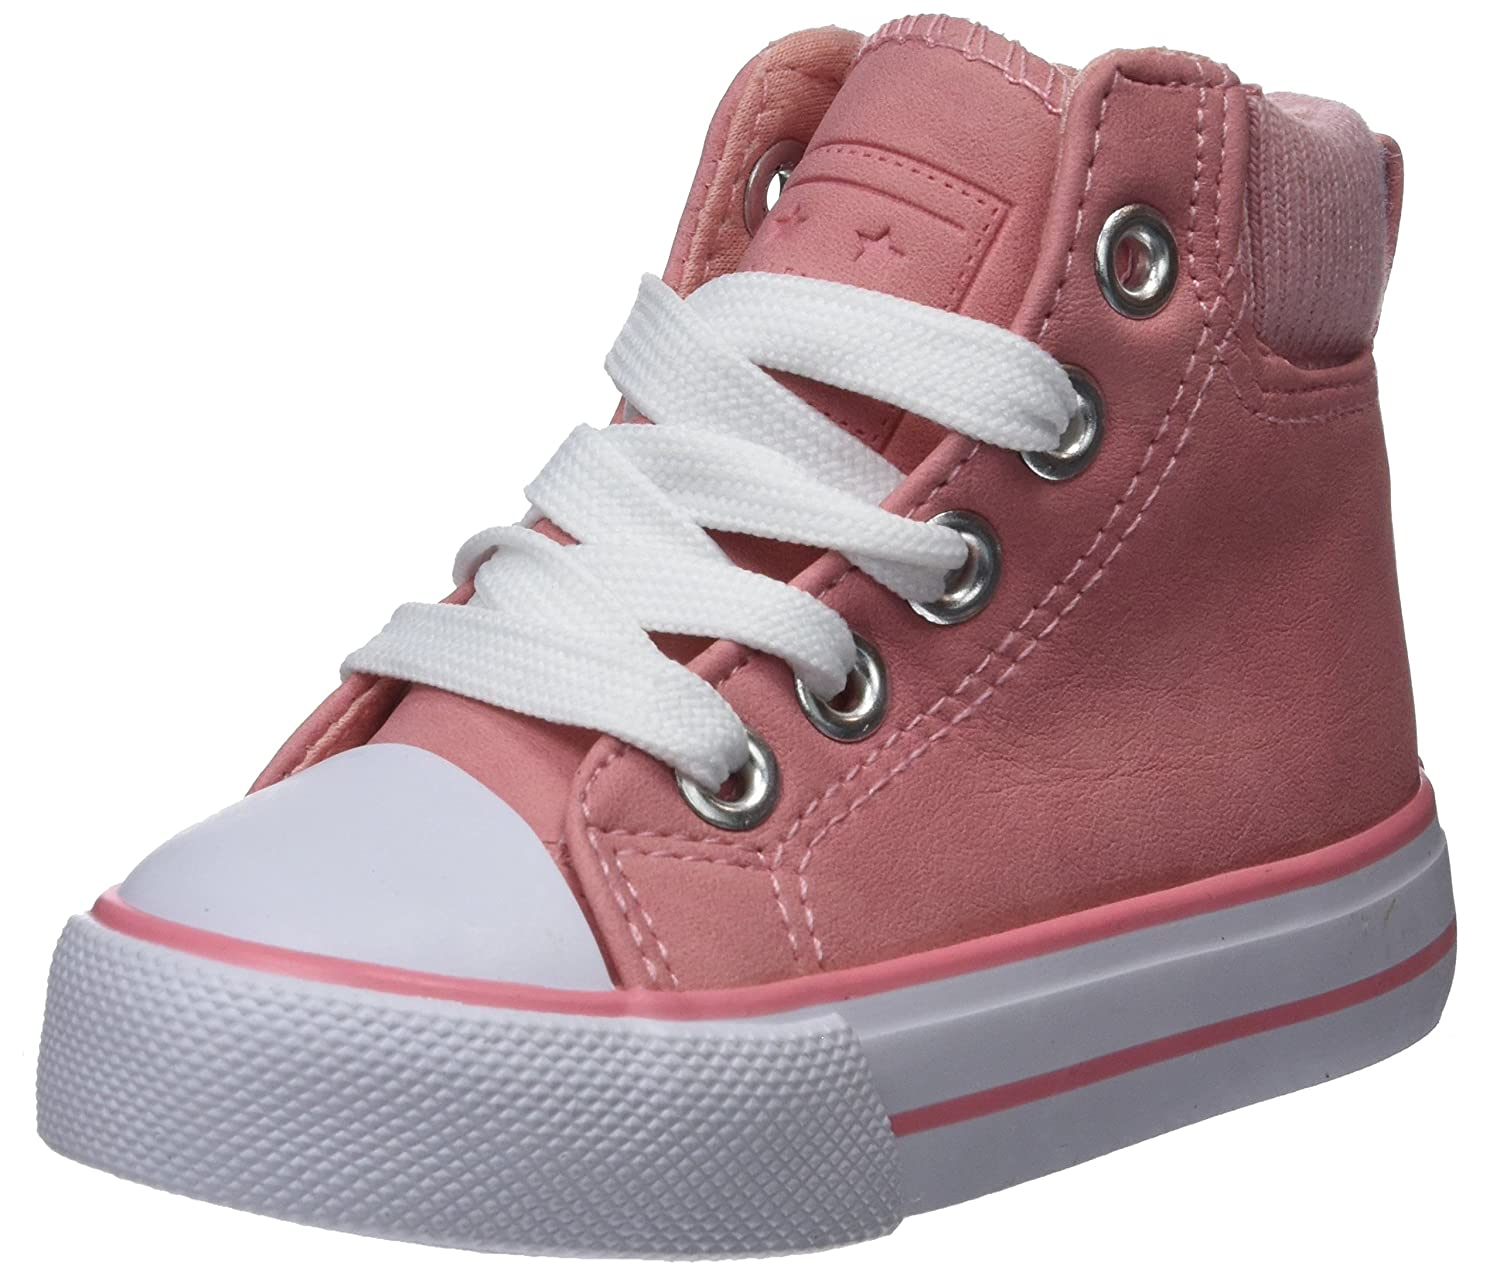 Zippy Zapatillas, Pantoufles bébé Fille Rose (Quartz Pink 14-1714TC) 22 EU ZBGS06_431_1